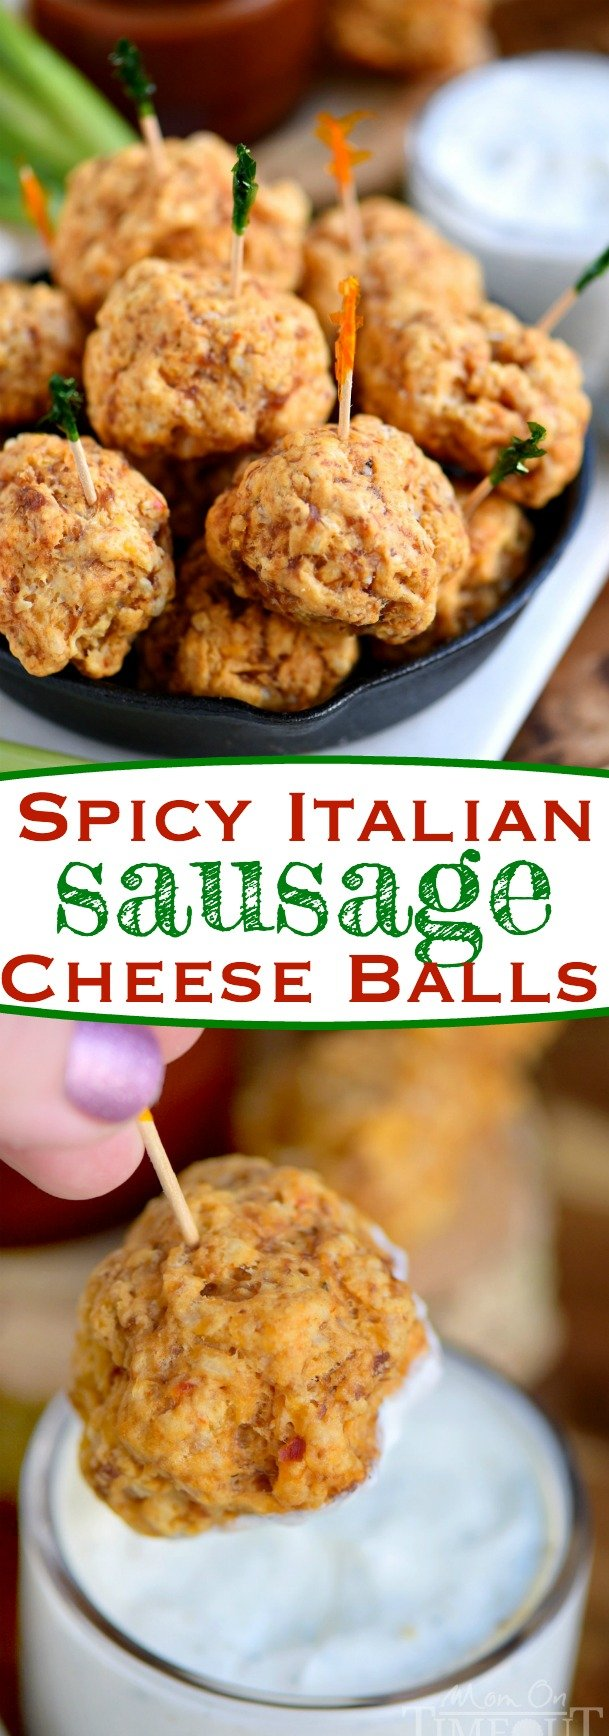 sausage-balls-bisquick-cheese-collage